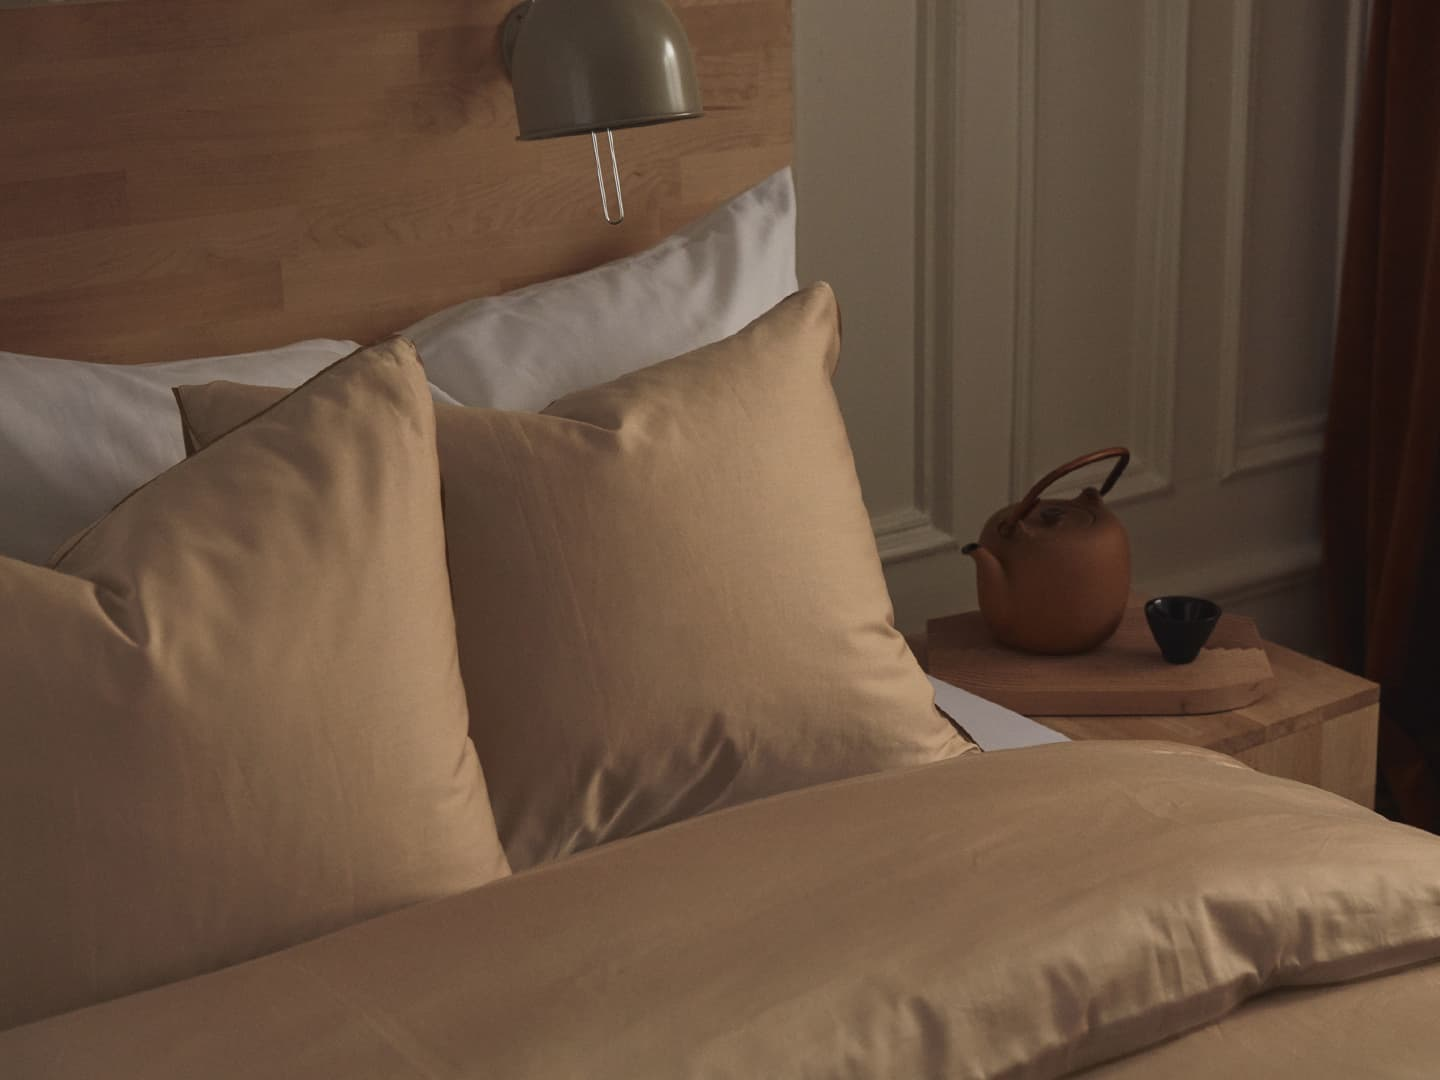 Pillowcase Strimma - Desert Sand in the group Bedding / Pillowcases at A L V A (1117)